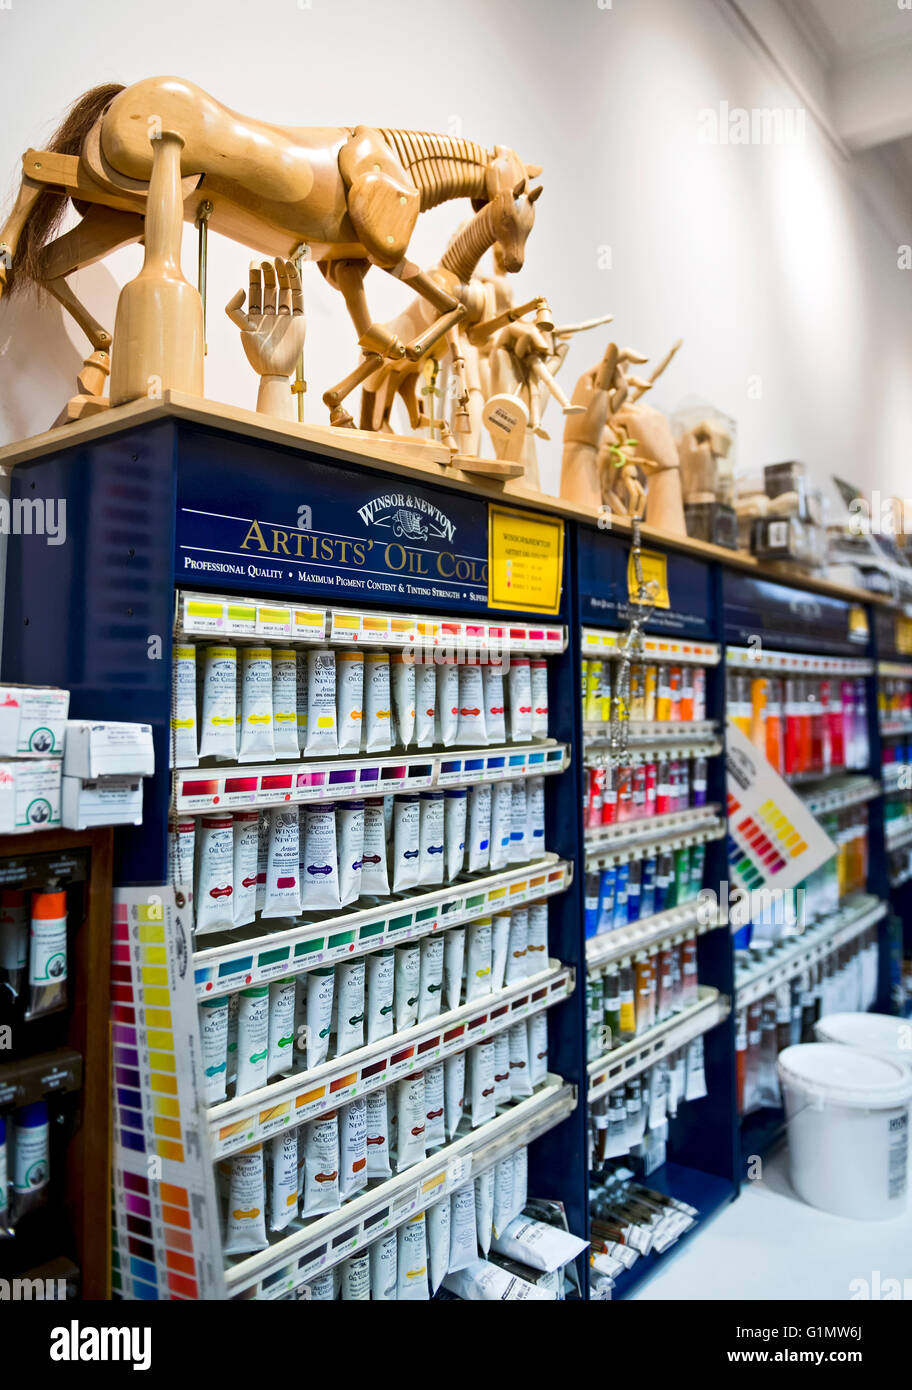 Art and artist supplies in an art supply store - Stock Image